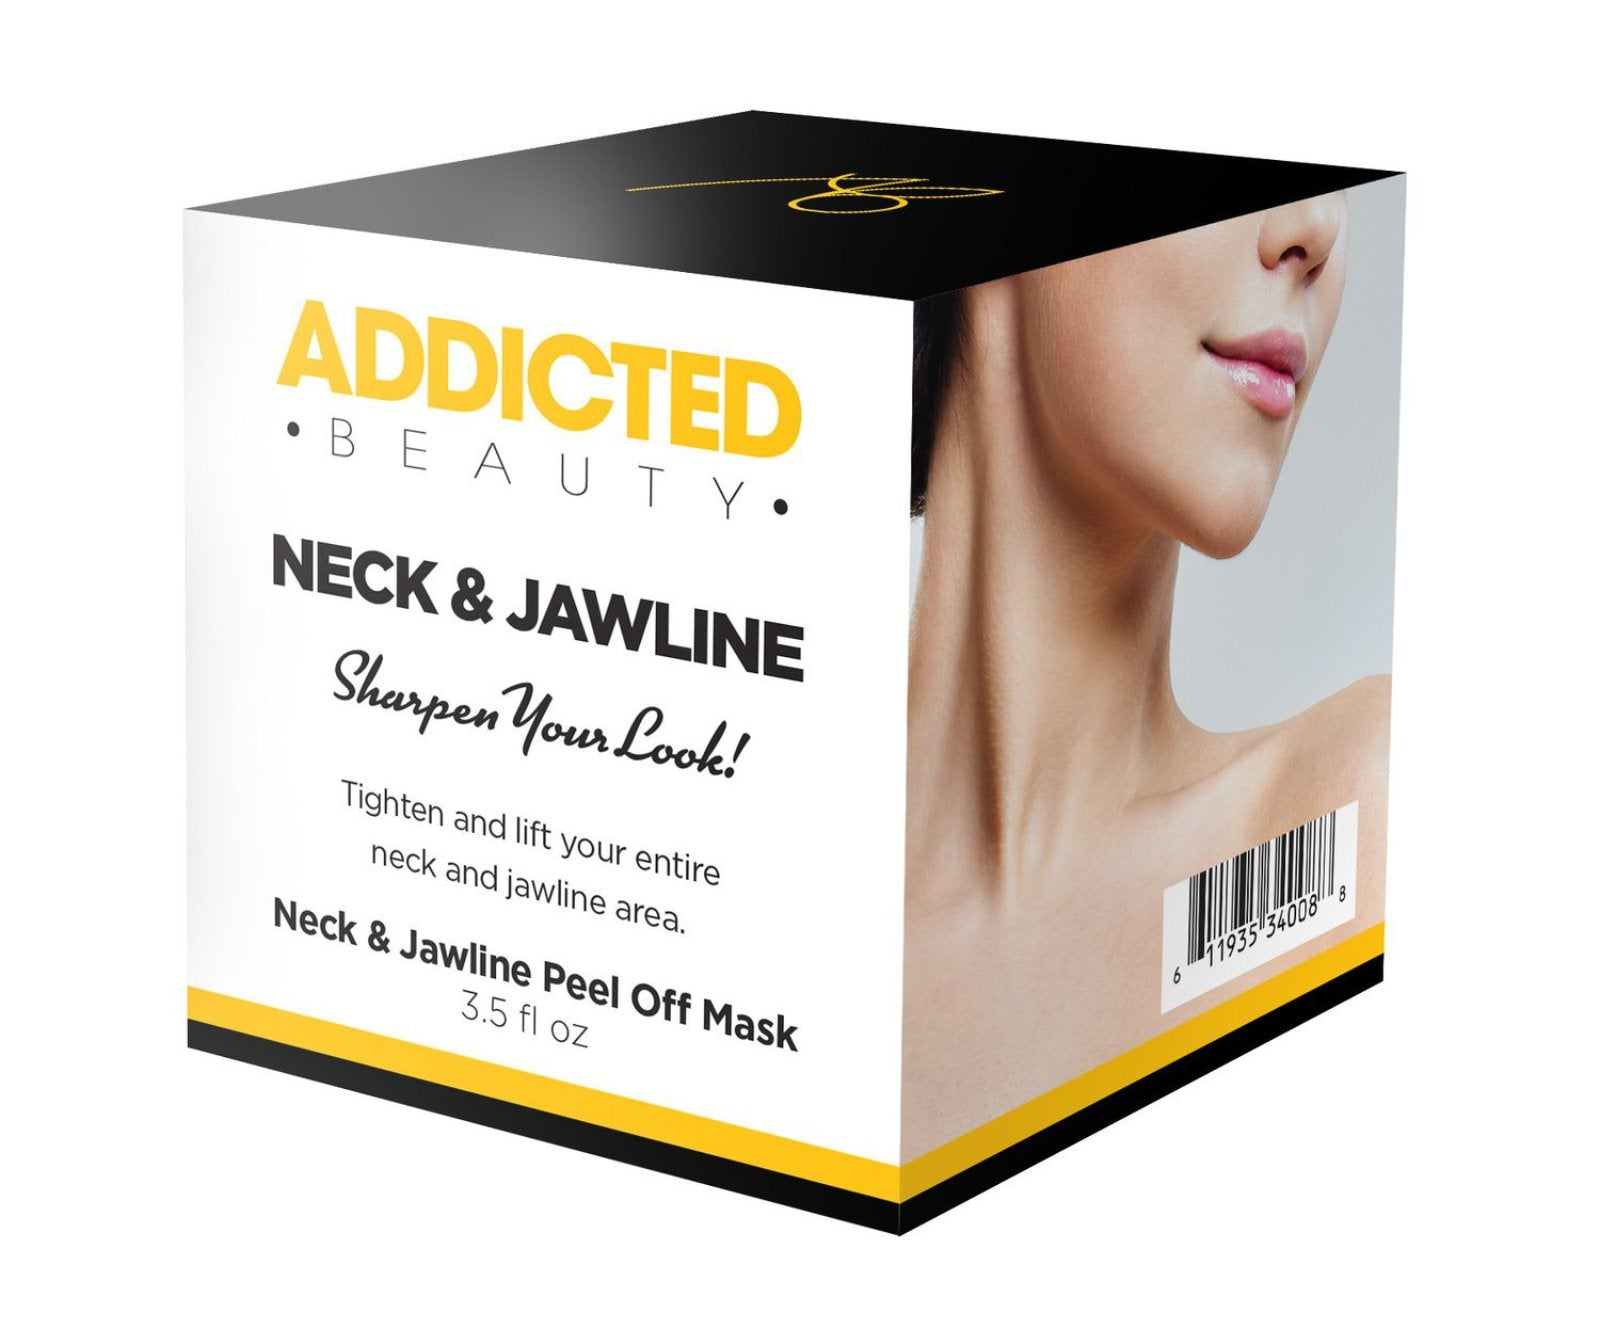 Addicted Beauty Neck and Jawline Peel-Off Mask